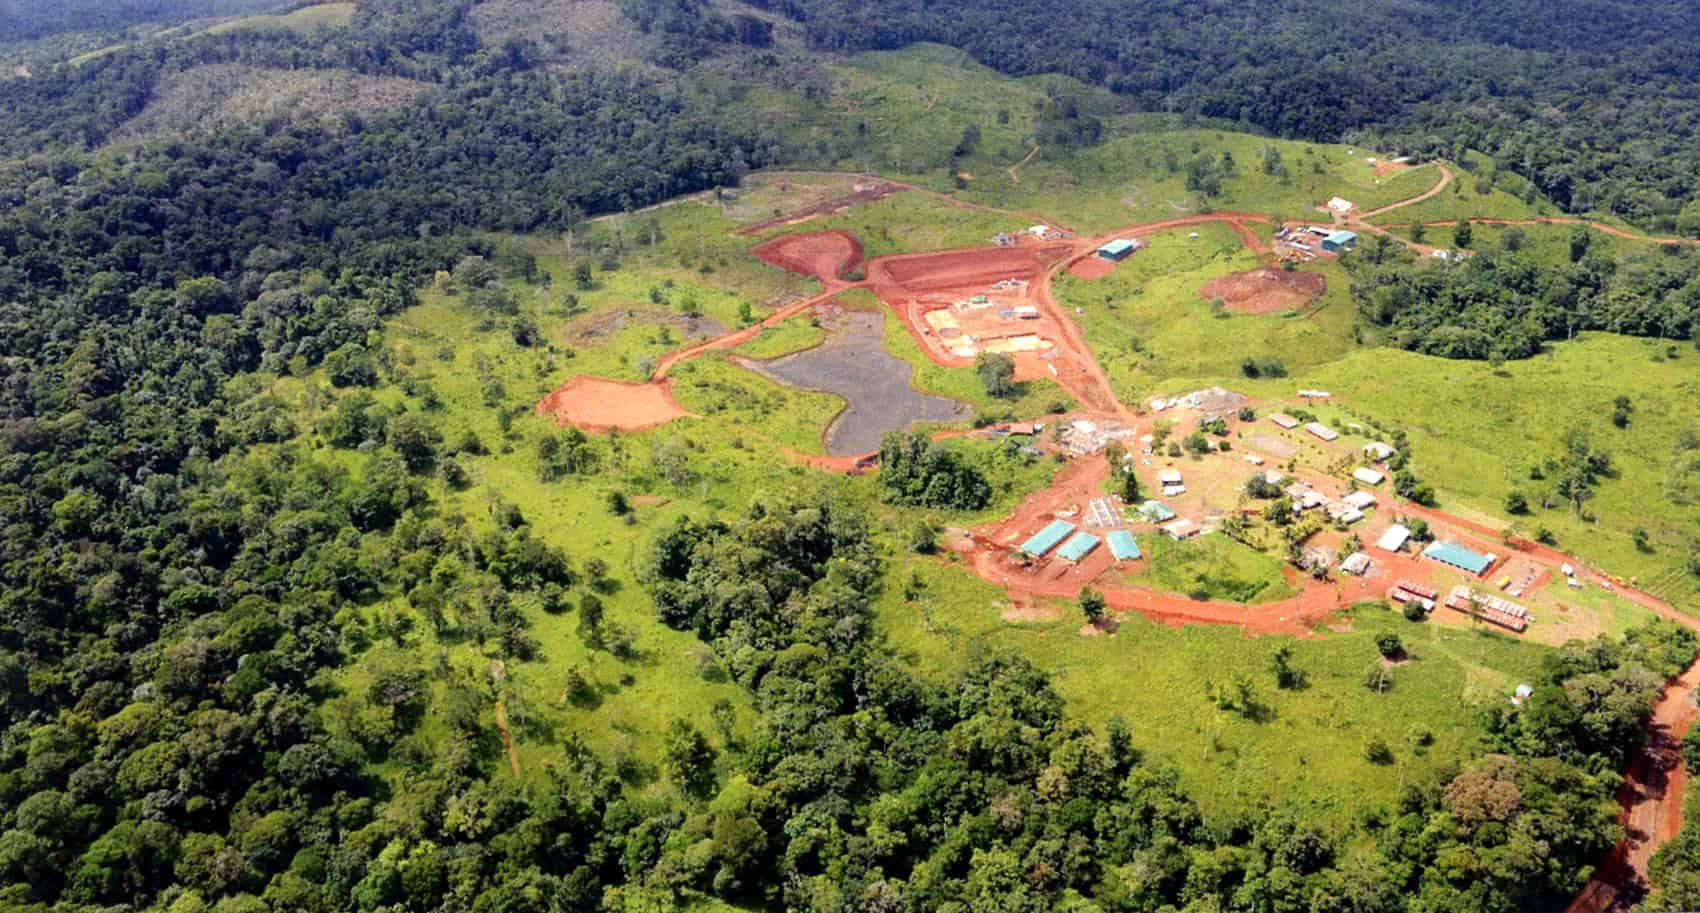 An aerial photograph of the Crucitas gold mining site in San Carlos, Alajuela, in northern Costa Rica.